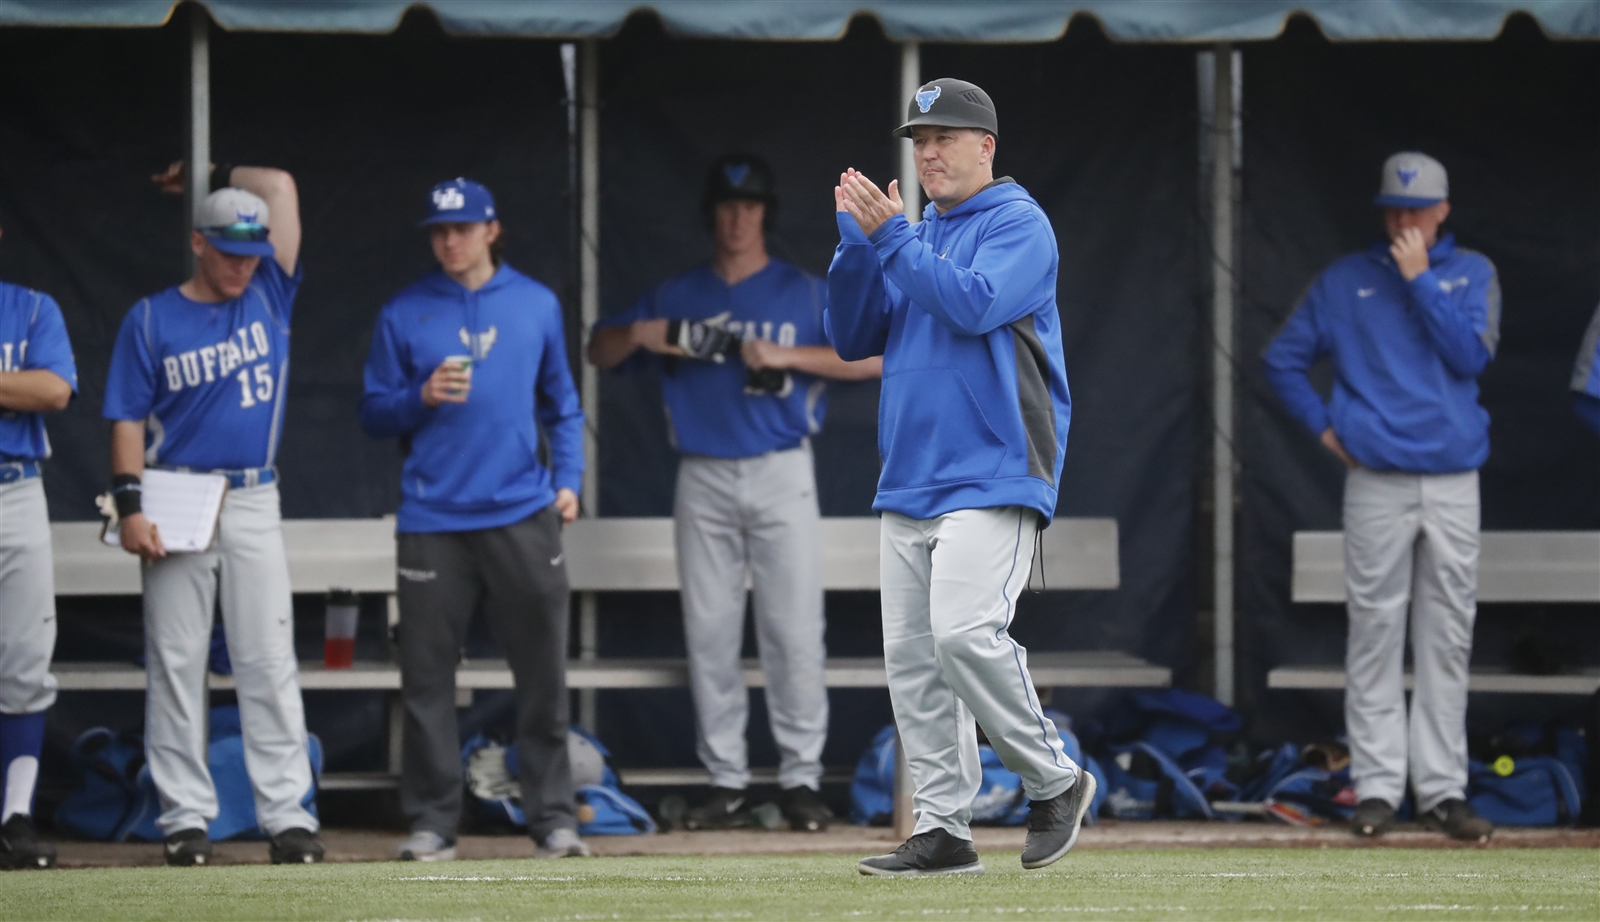 University at Buffalo coach Ron Torgalski cheers on his team against Canisius.